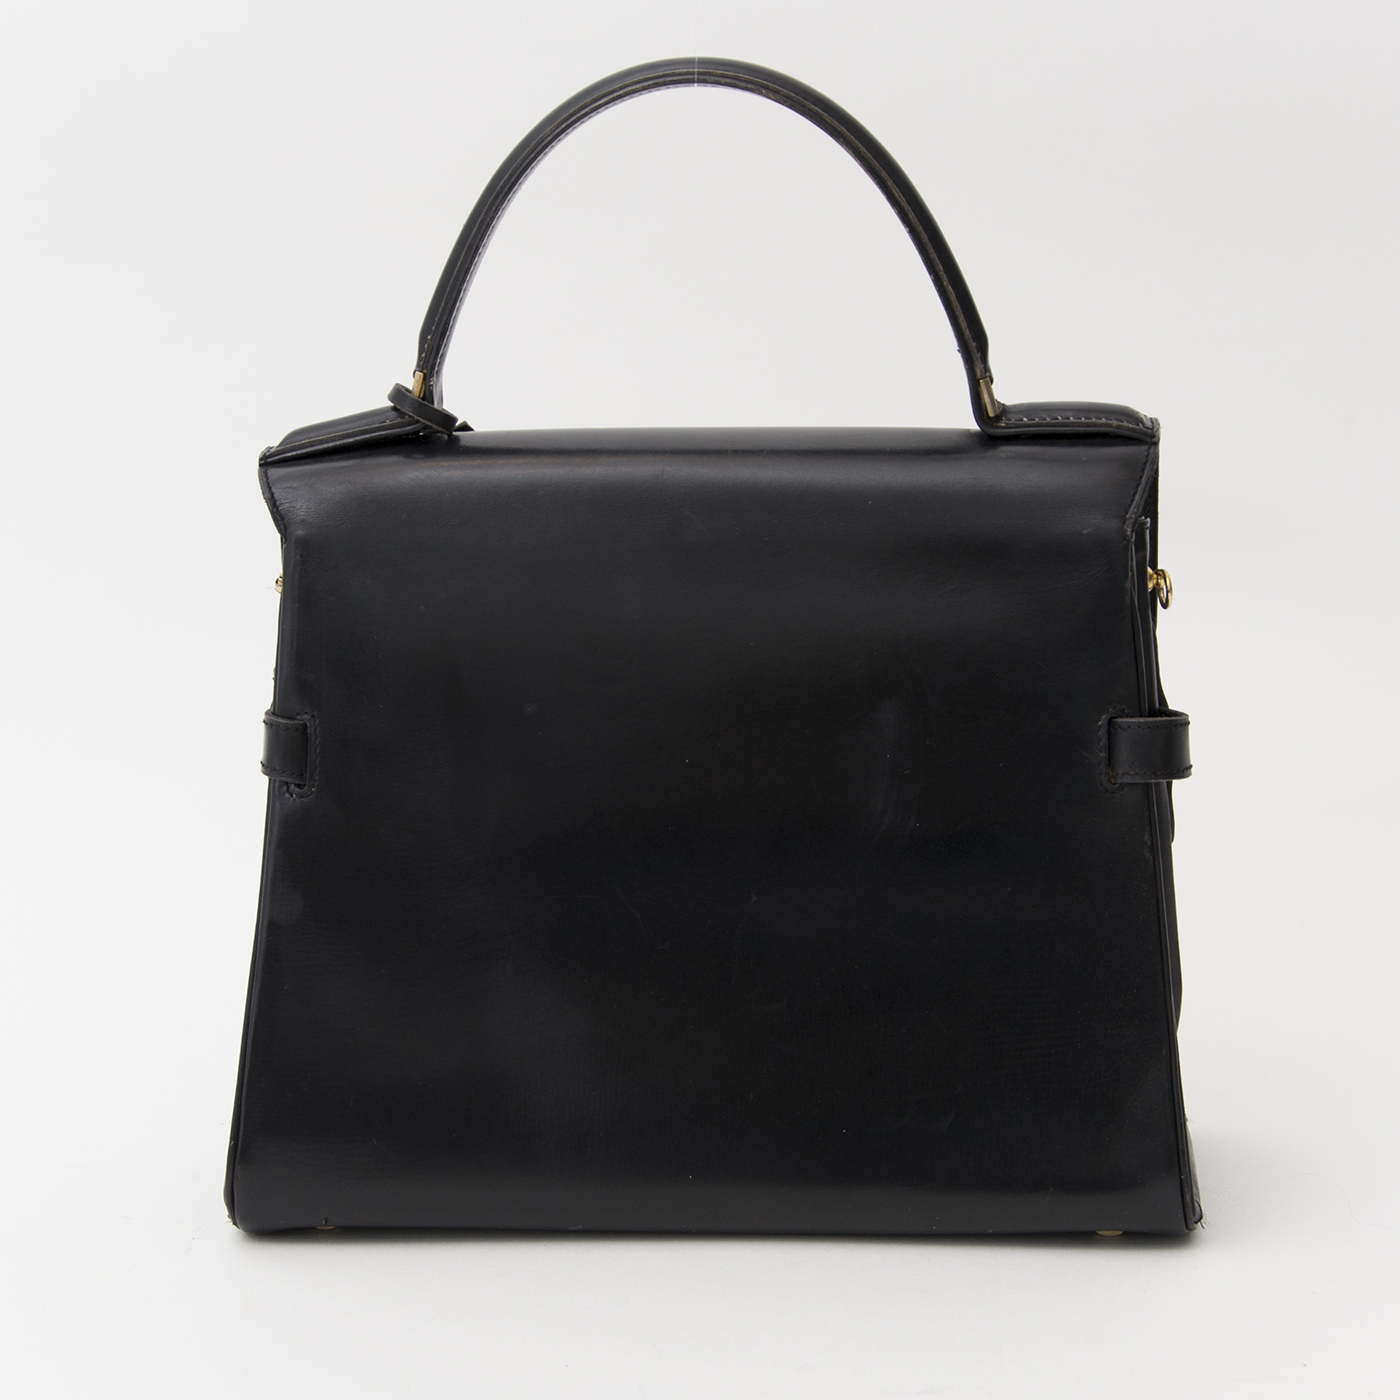 561fe3ac993 Veilig online winkelen. Luxe Buy authentic Delvaux at the right price at  LabelLOV vintage webshop. Luxe, vintage,